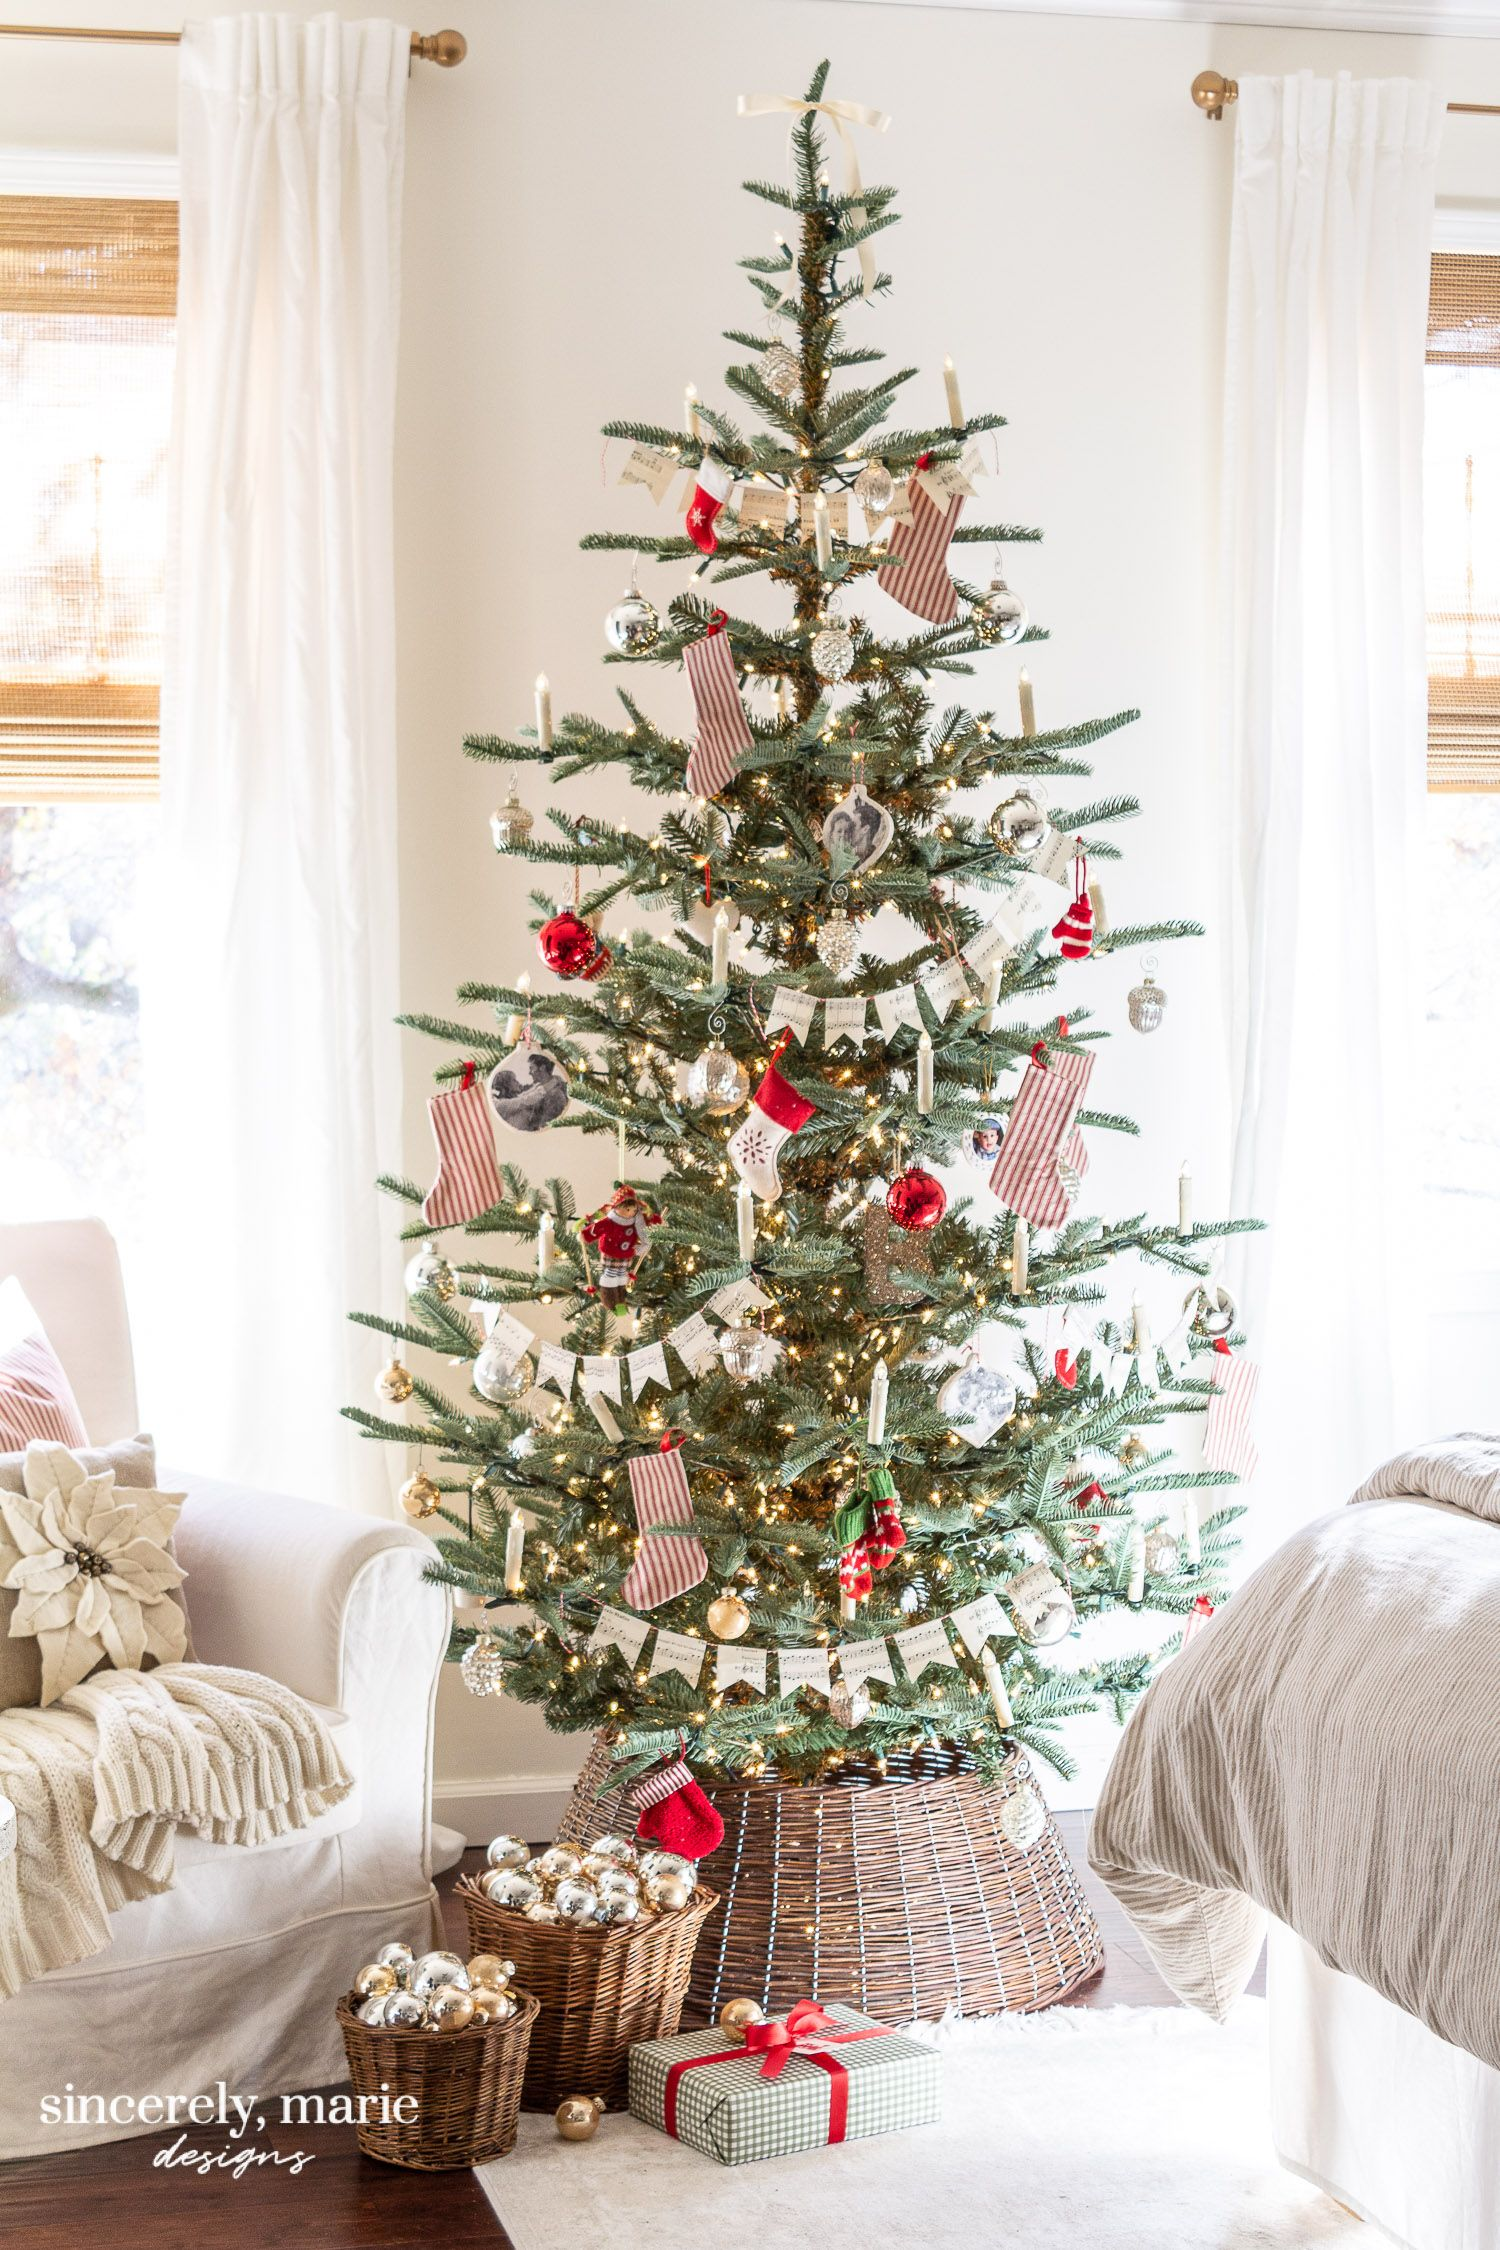 Our Bedroom's Old Fashioned Christmas Tree - Sincerely, Marie Designs